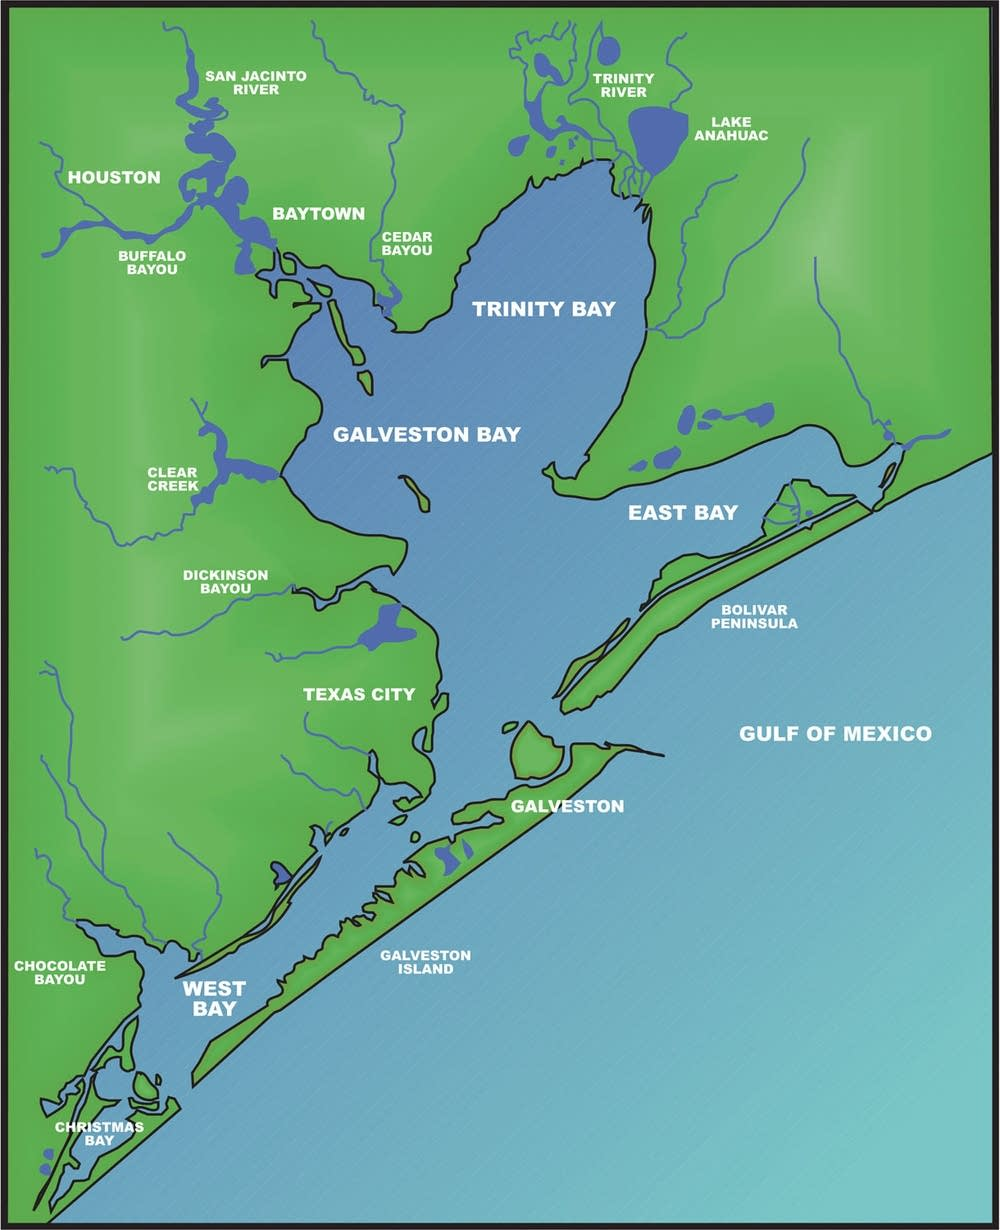 Map of Galveston Bay. Image available on the Internet and